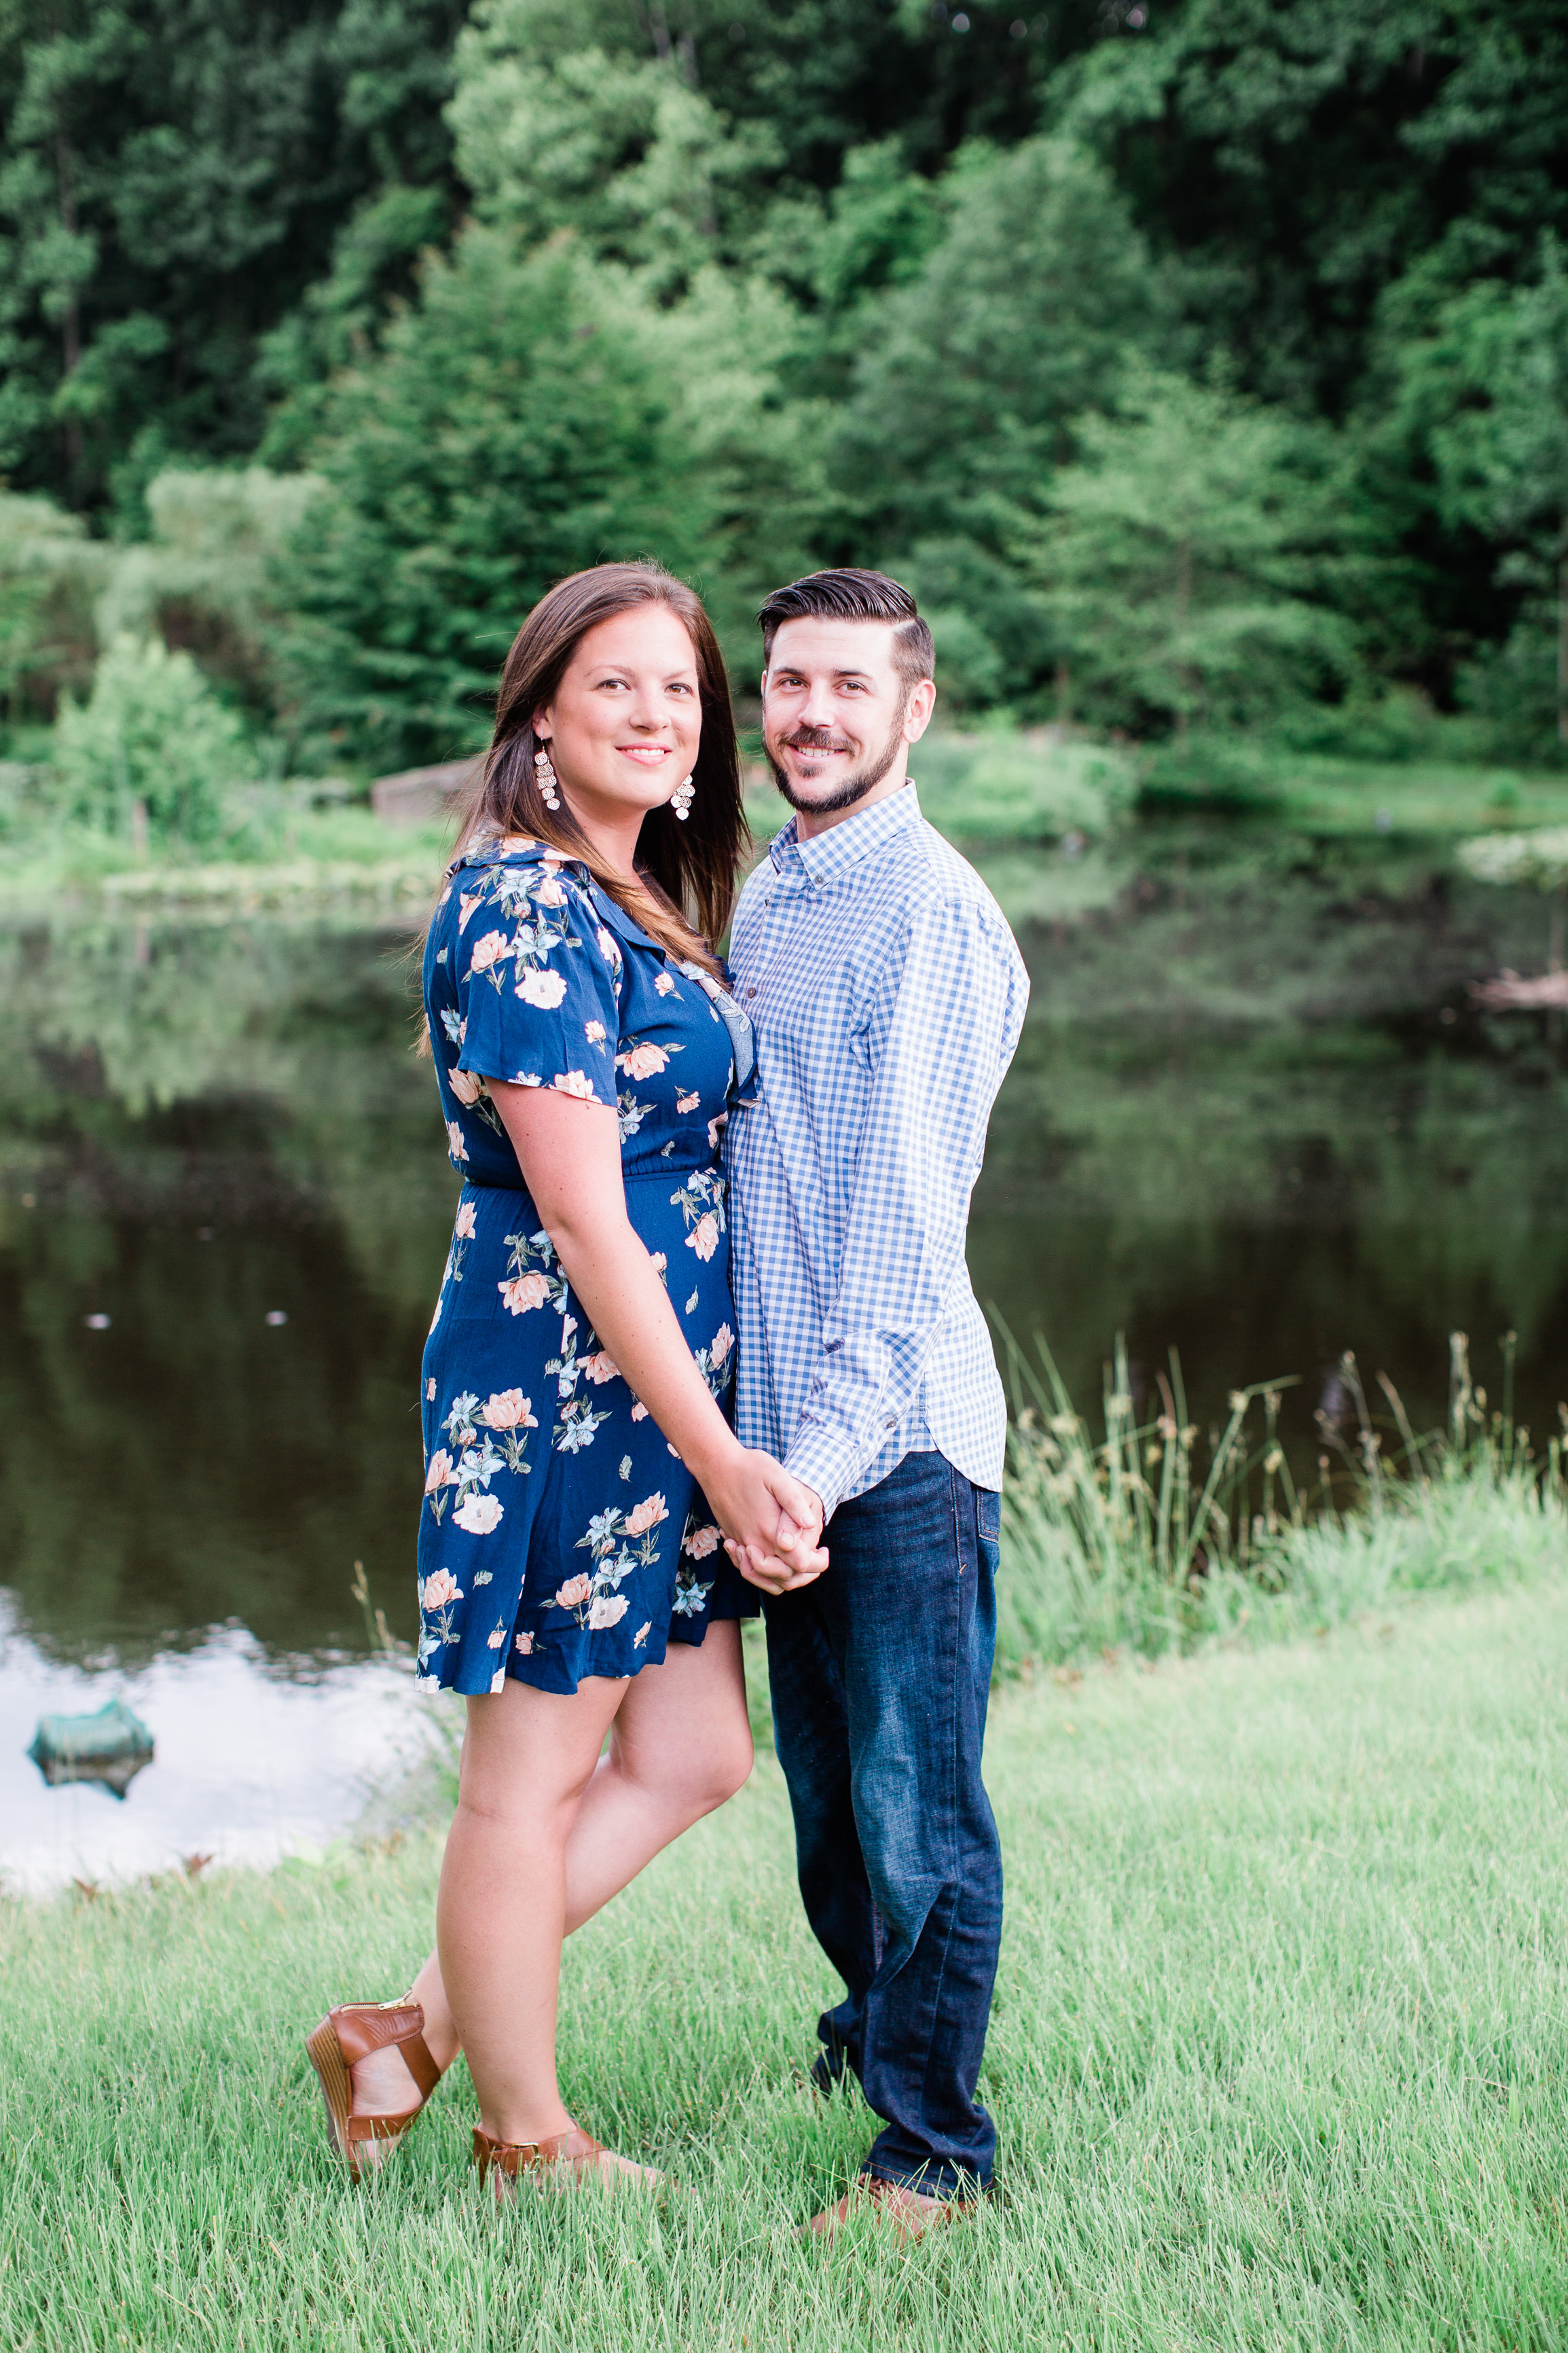 meadowlark_botanical_gardens_engagements-6491.jpg